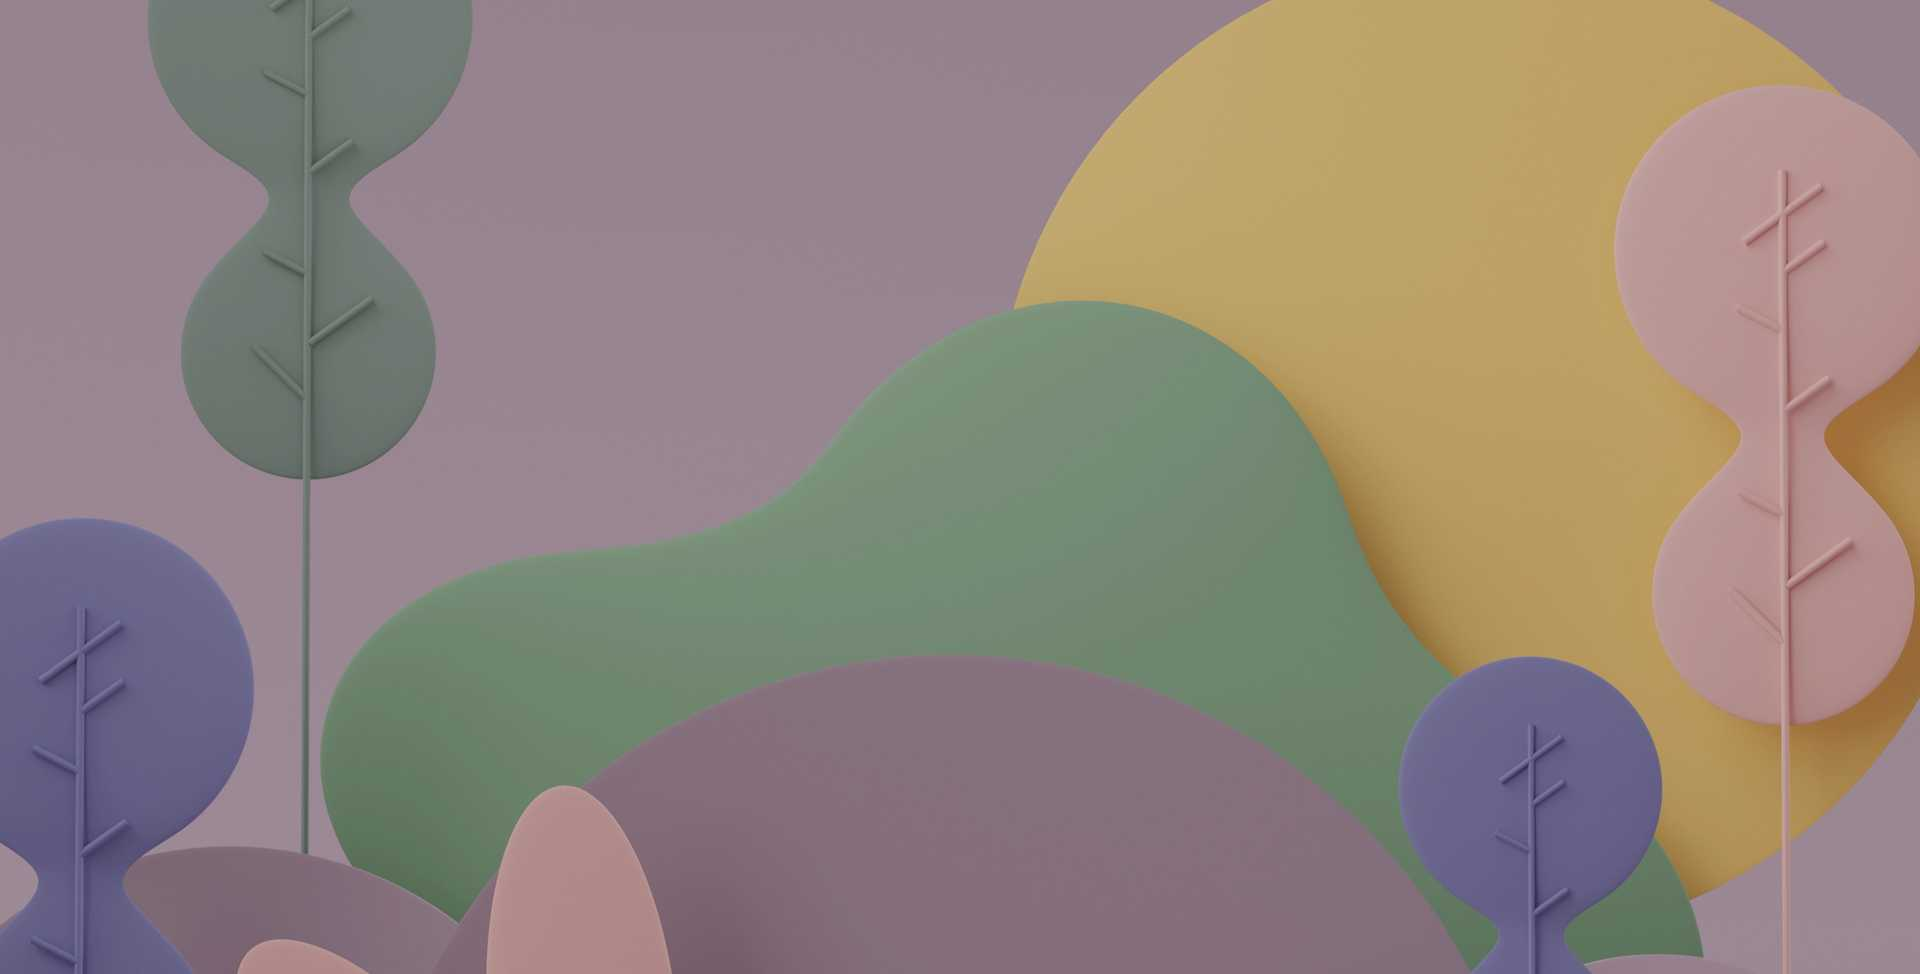 Abstract rendering of a forest in greens and purples against a purple sky with a large yellow sun, representing calm and work life balance